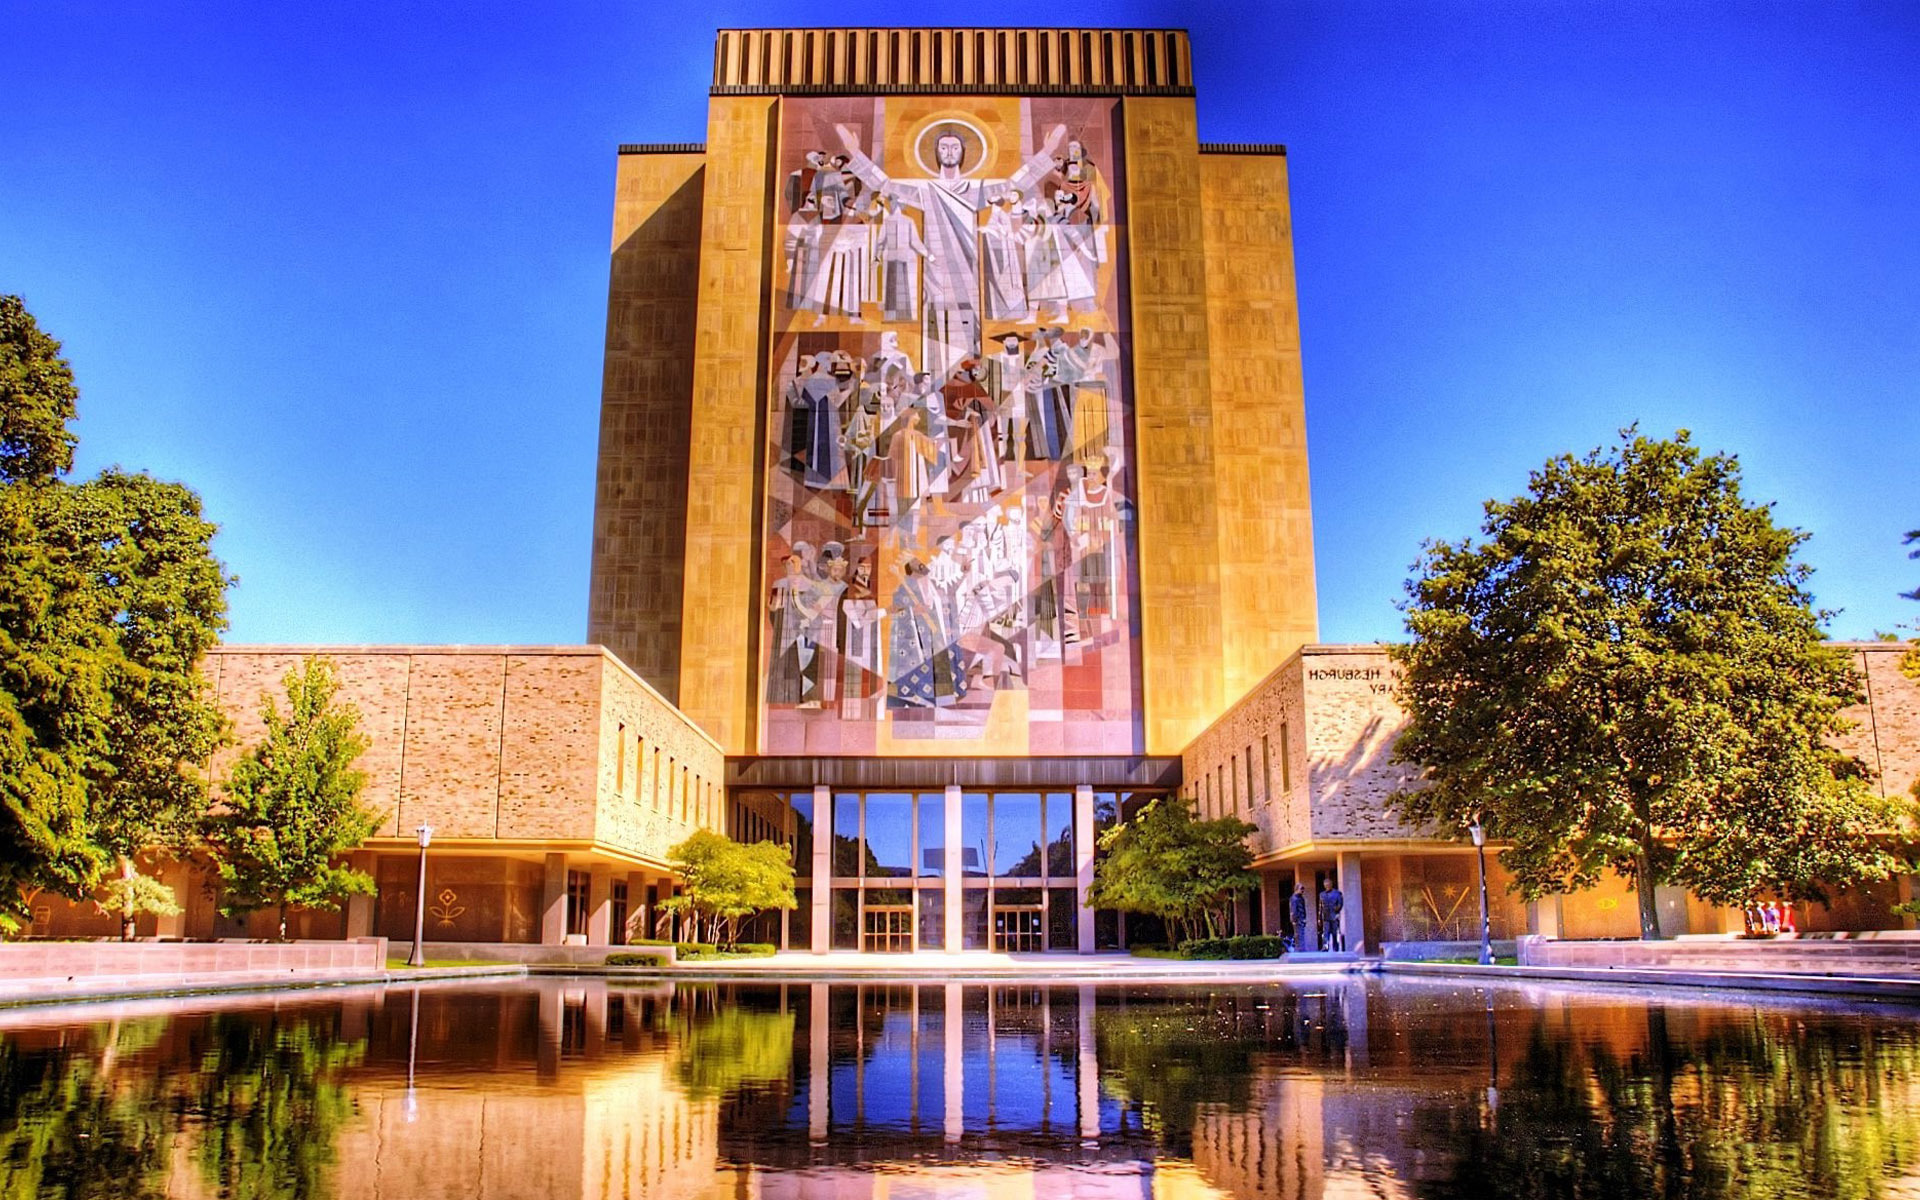 Download Theodore Hesburgh Library University of Notre Dame wallpaper 1920x1200